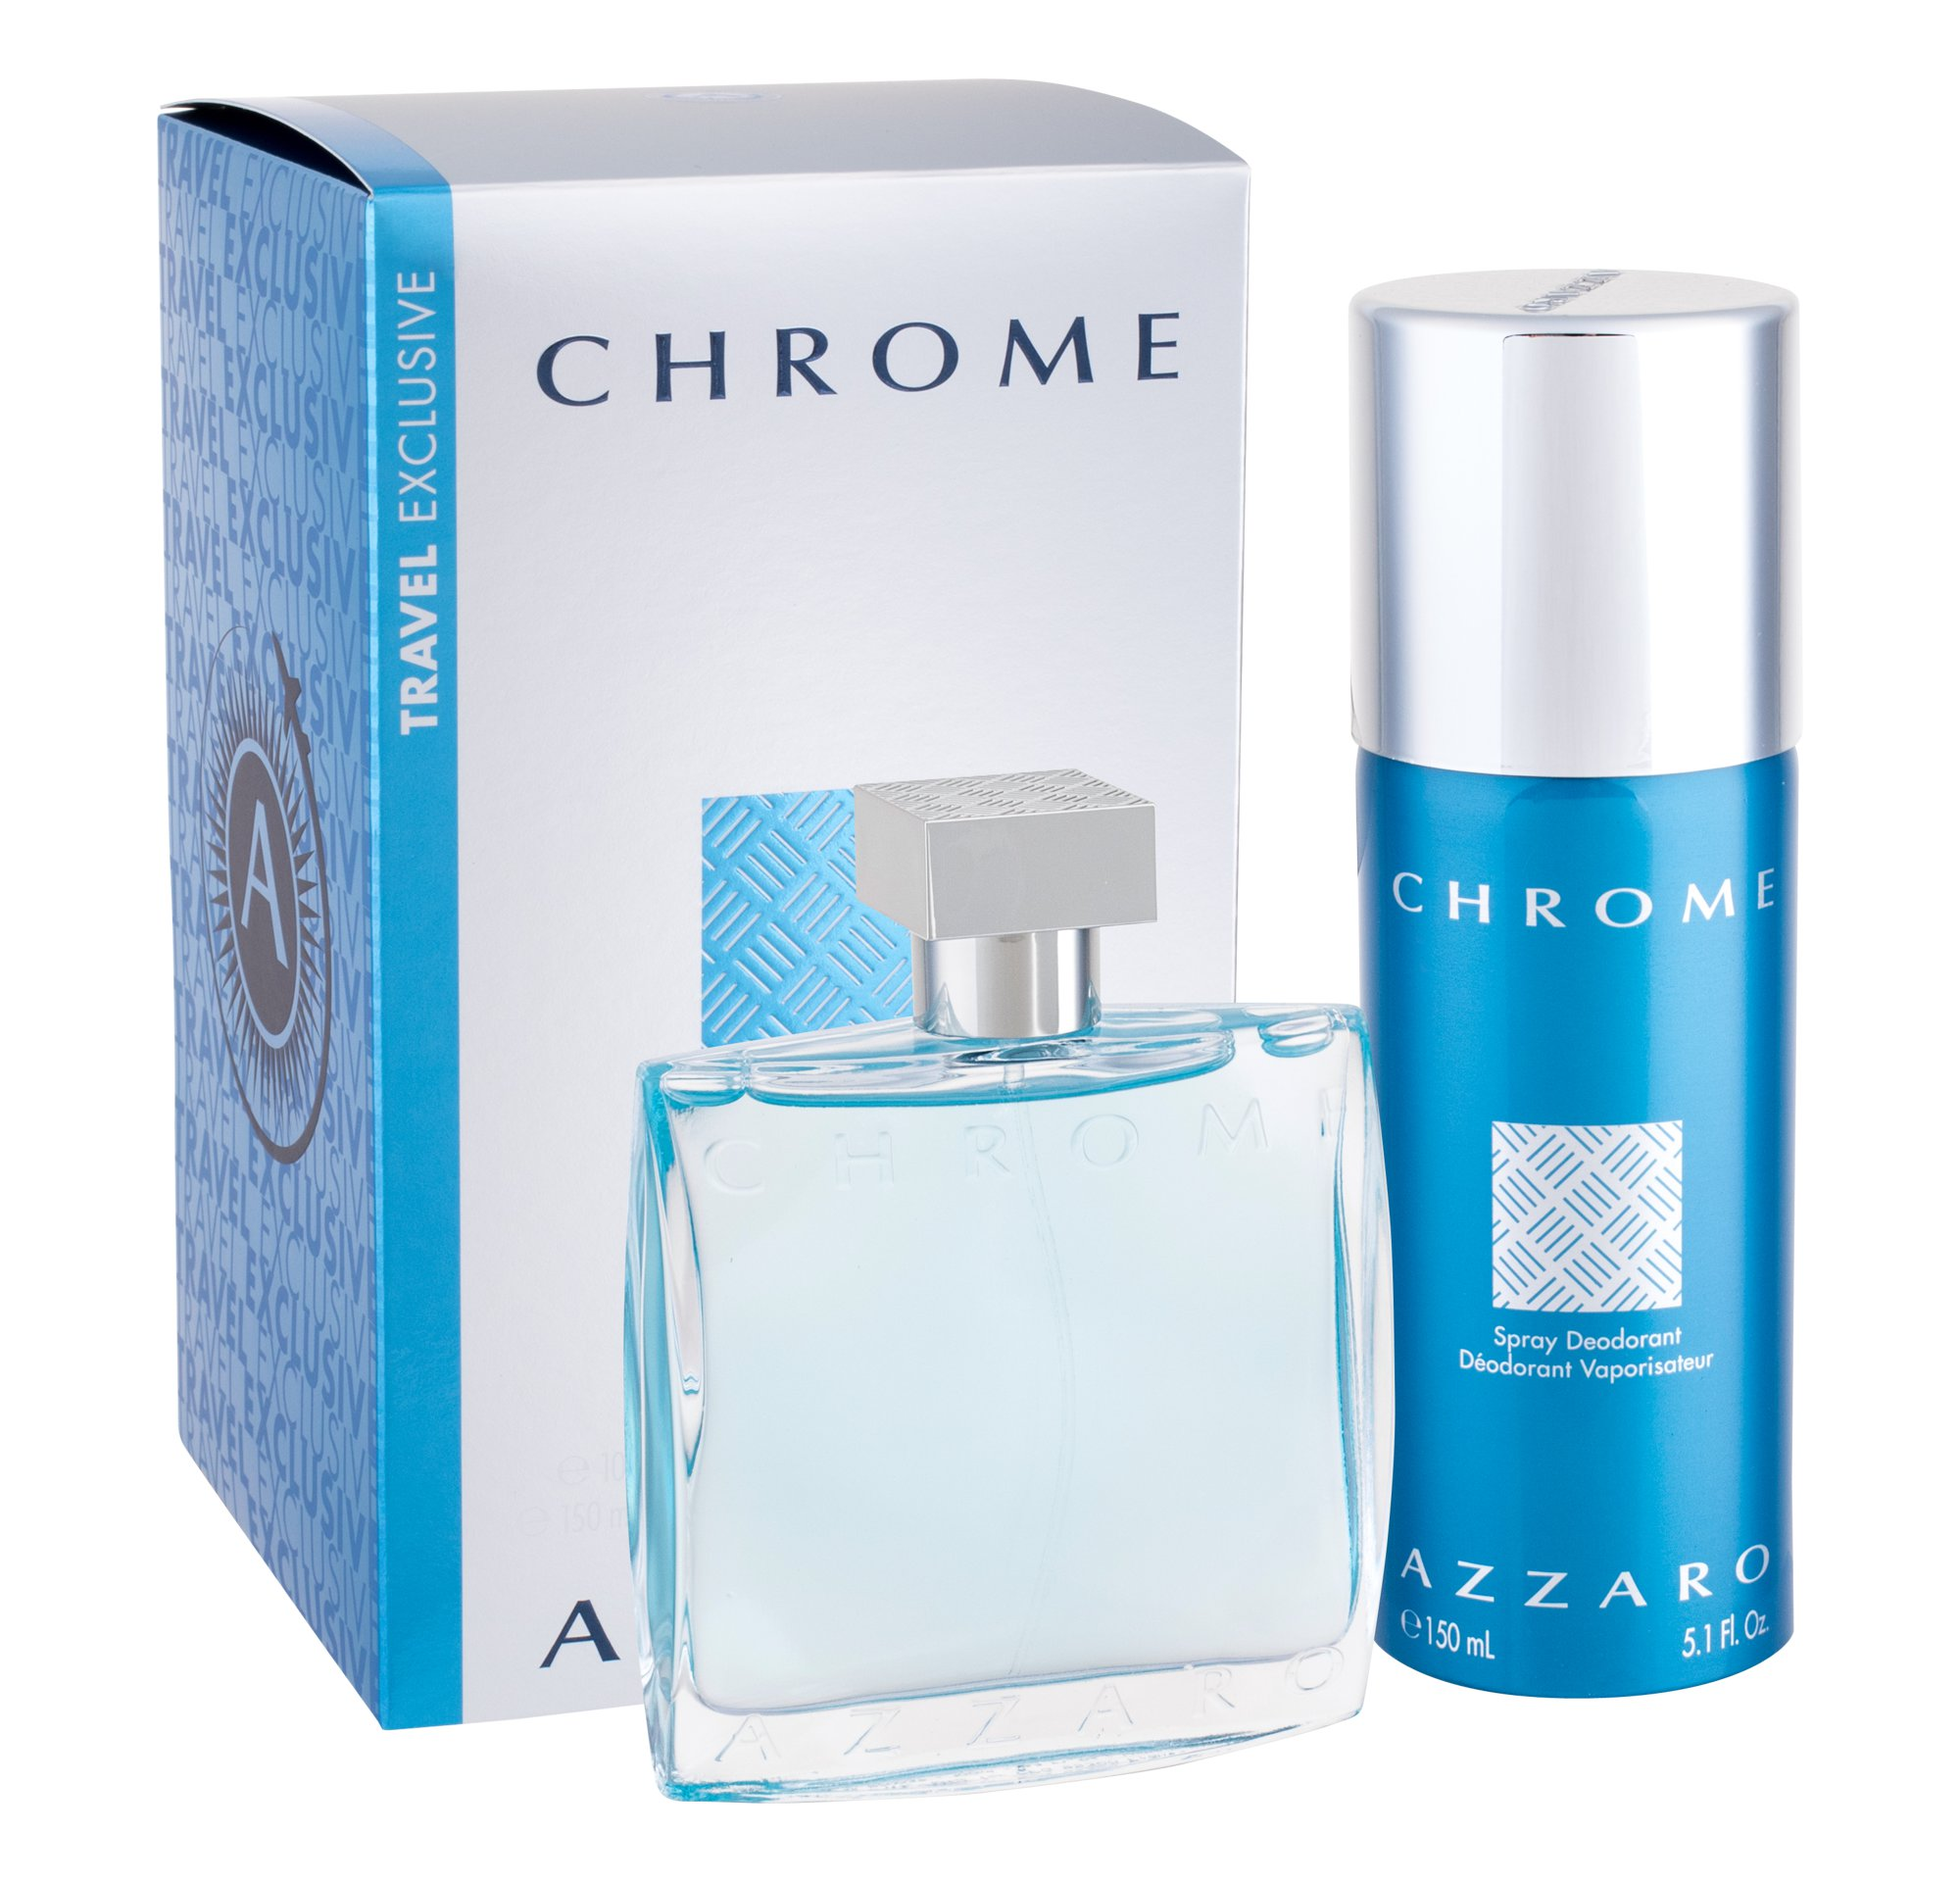 Azzaro Chrome, Edt 100ml + 150ml deodorant